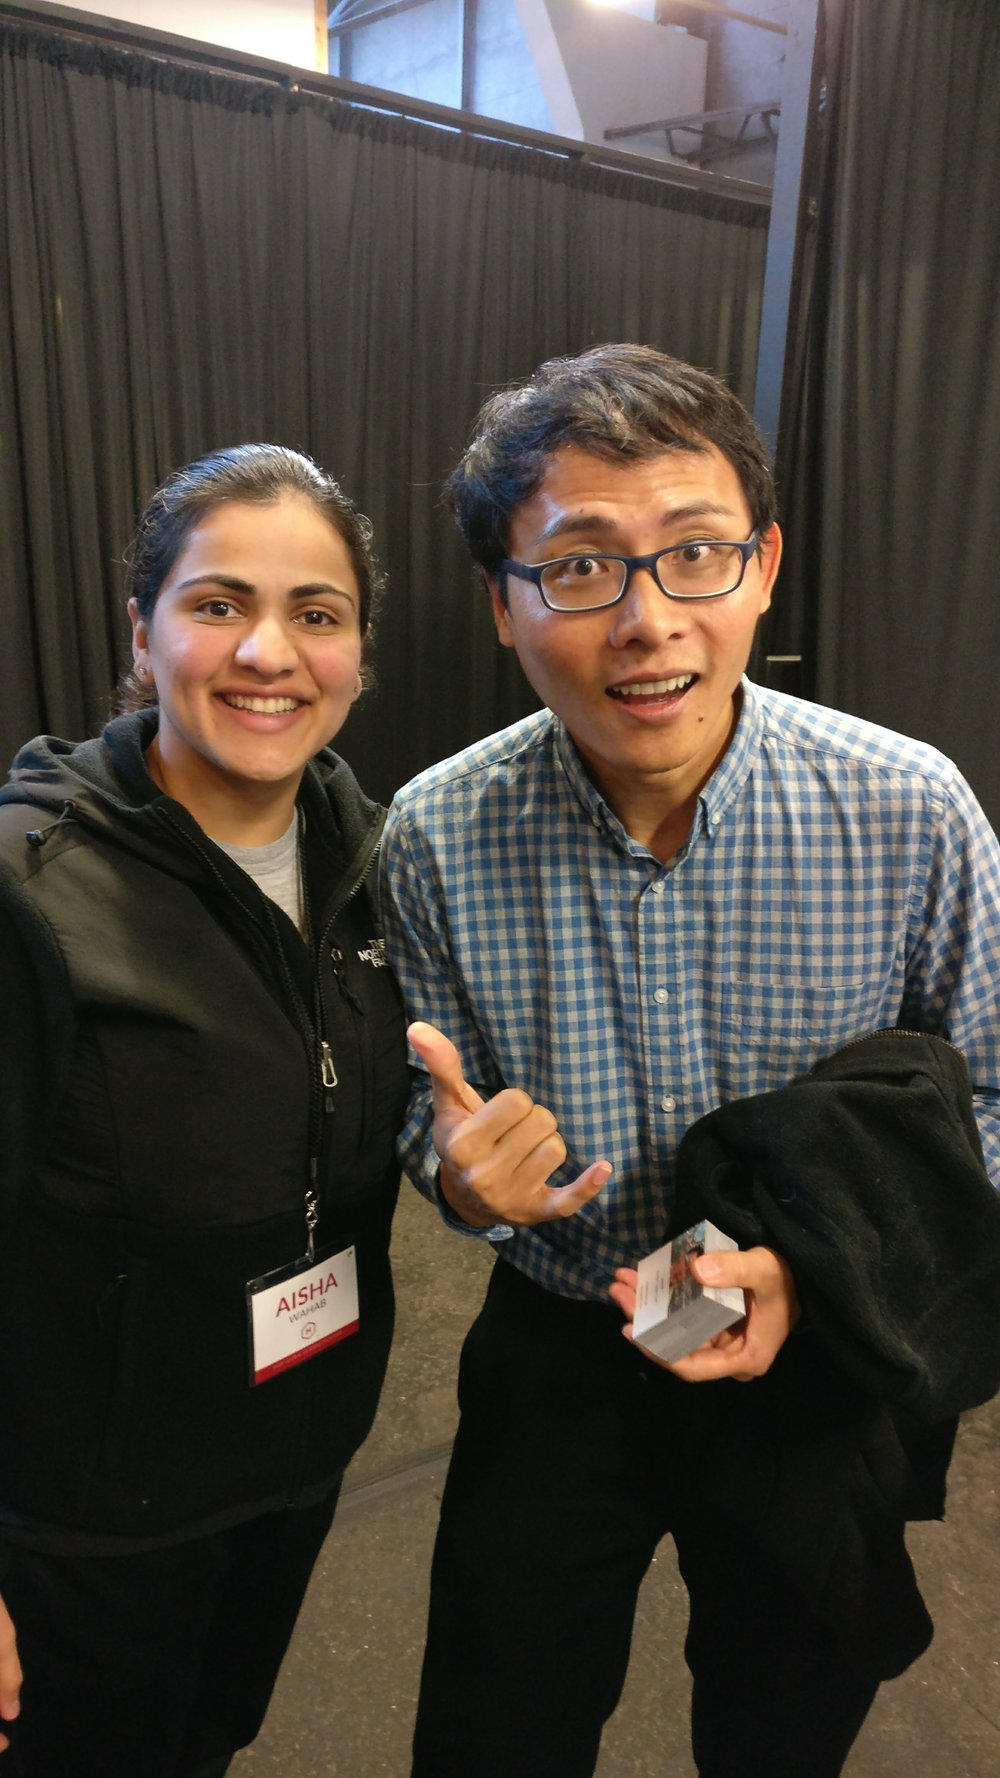 Google X Founder Tom Chi and Aisha